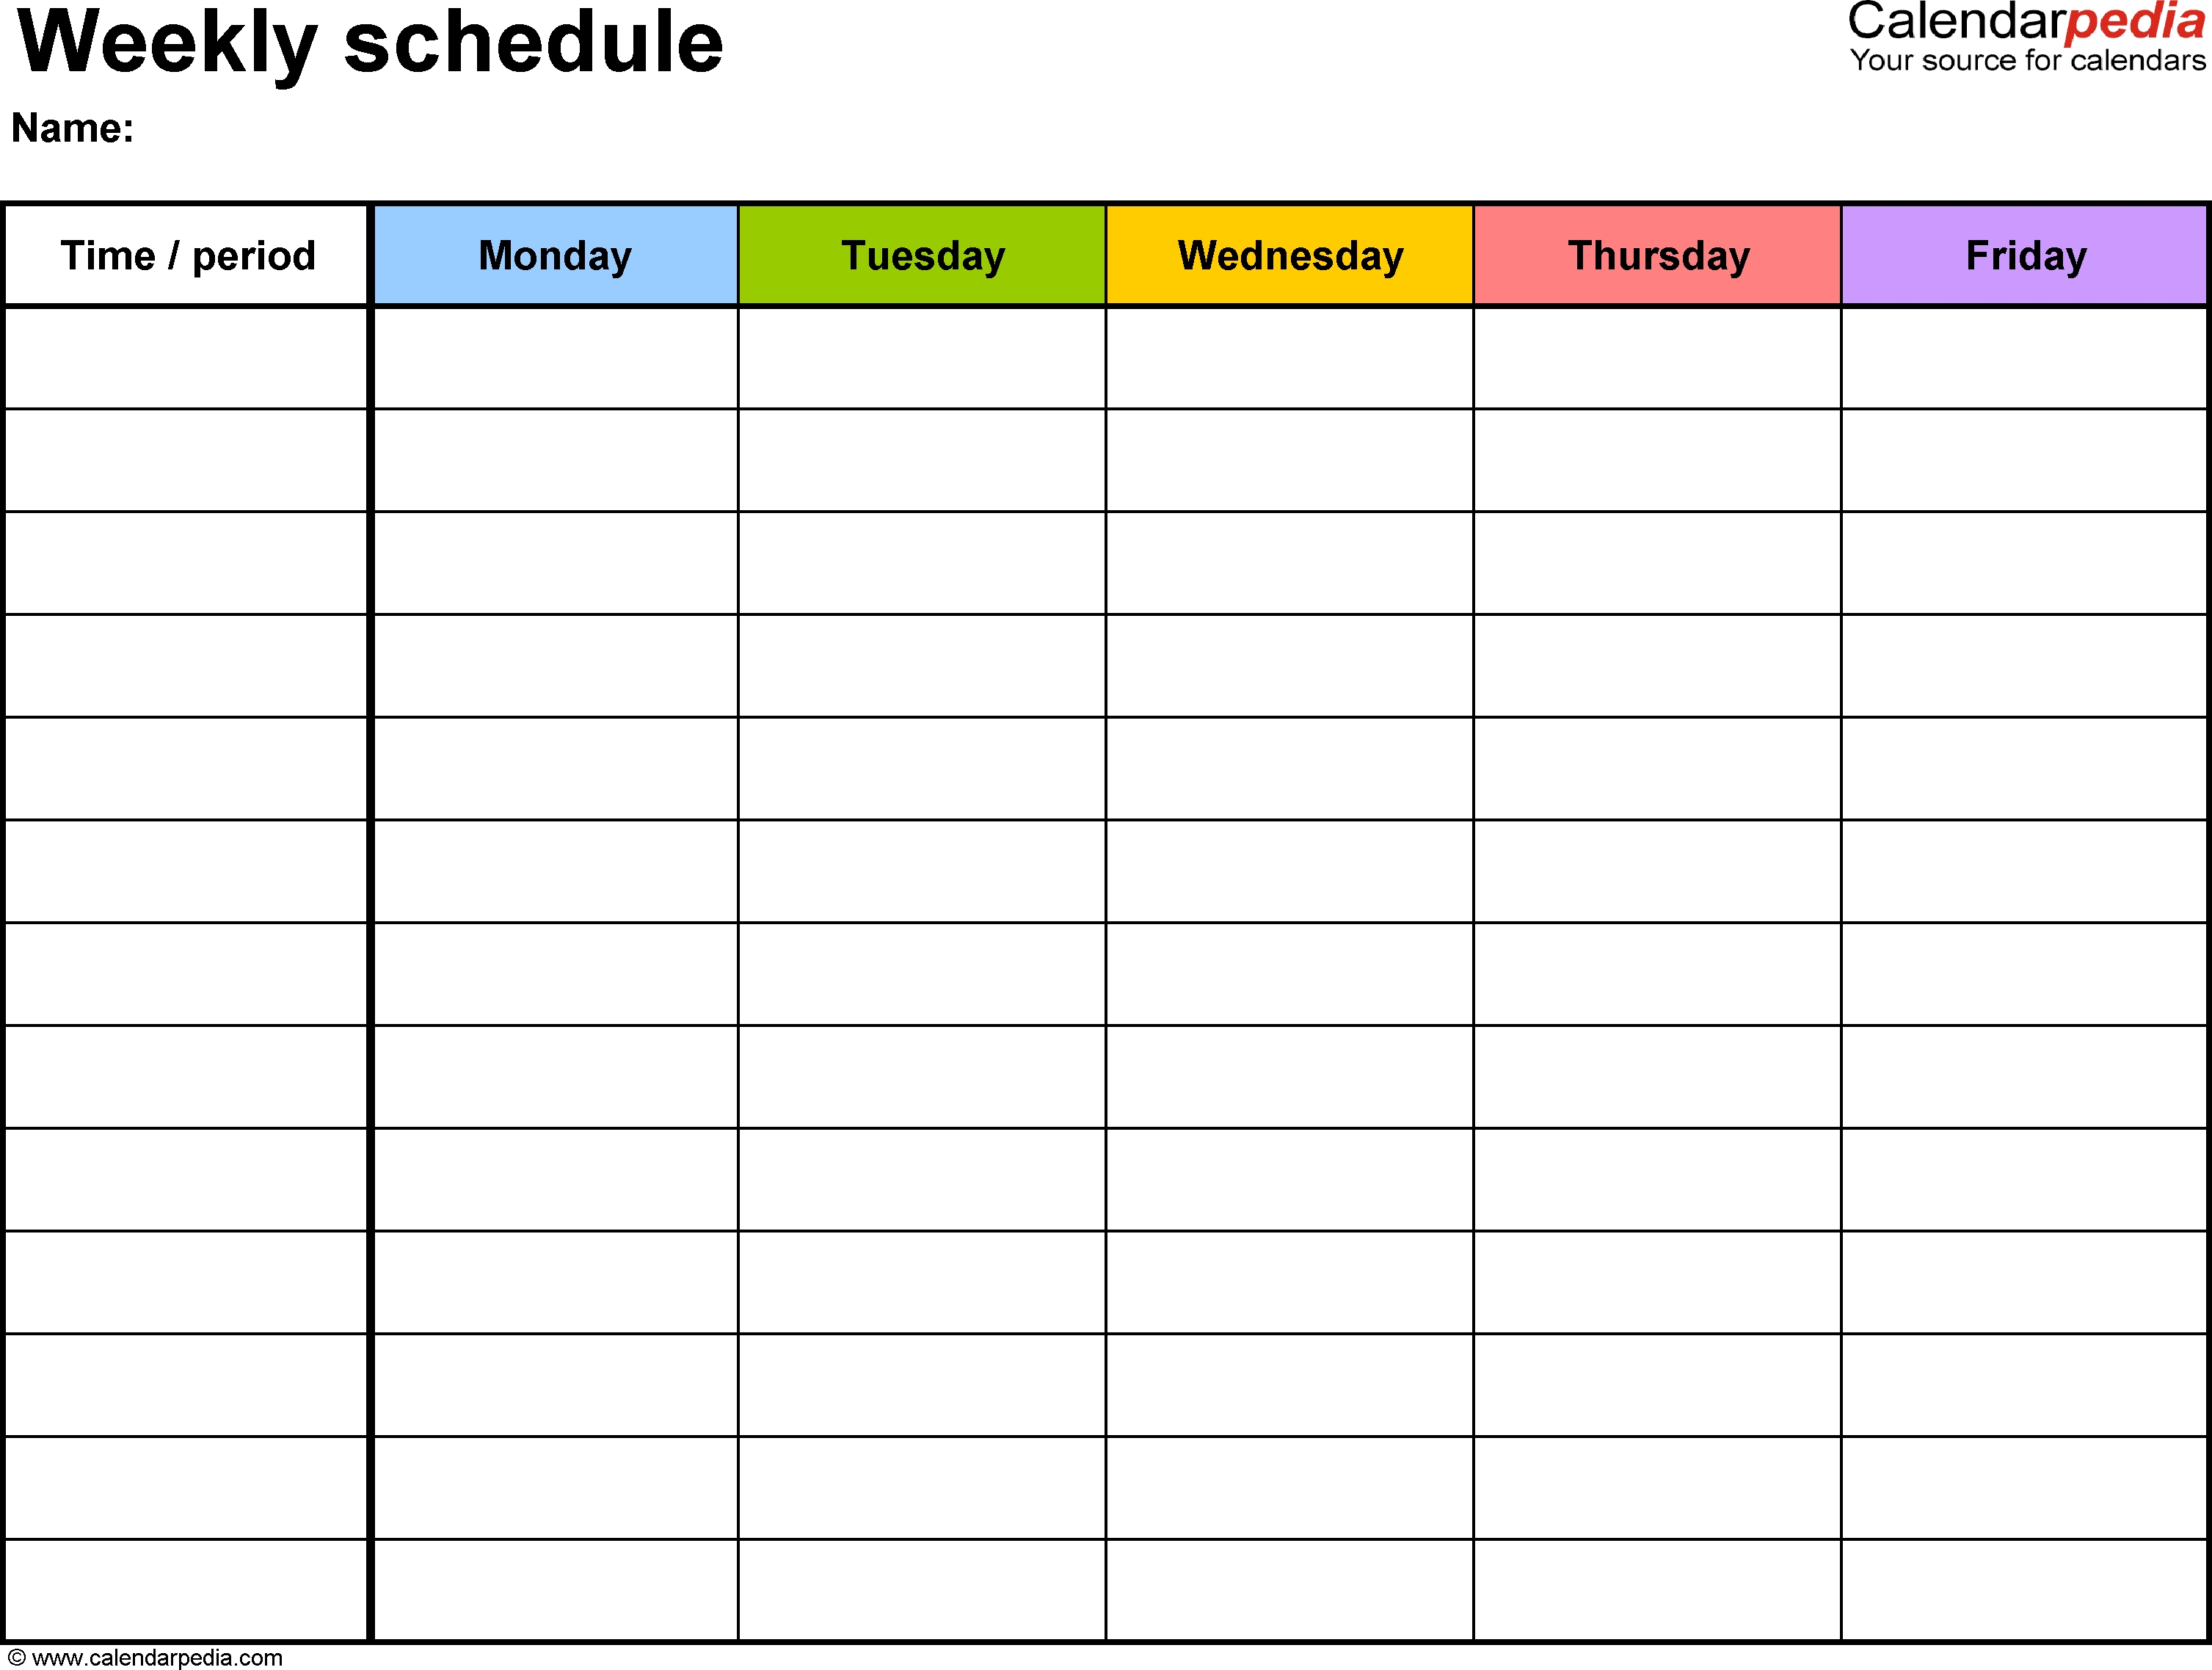 Free Weekly Schedule Templates For Excel - 18 Templates for Weekly Calendar Template With Minute Time Slots